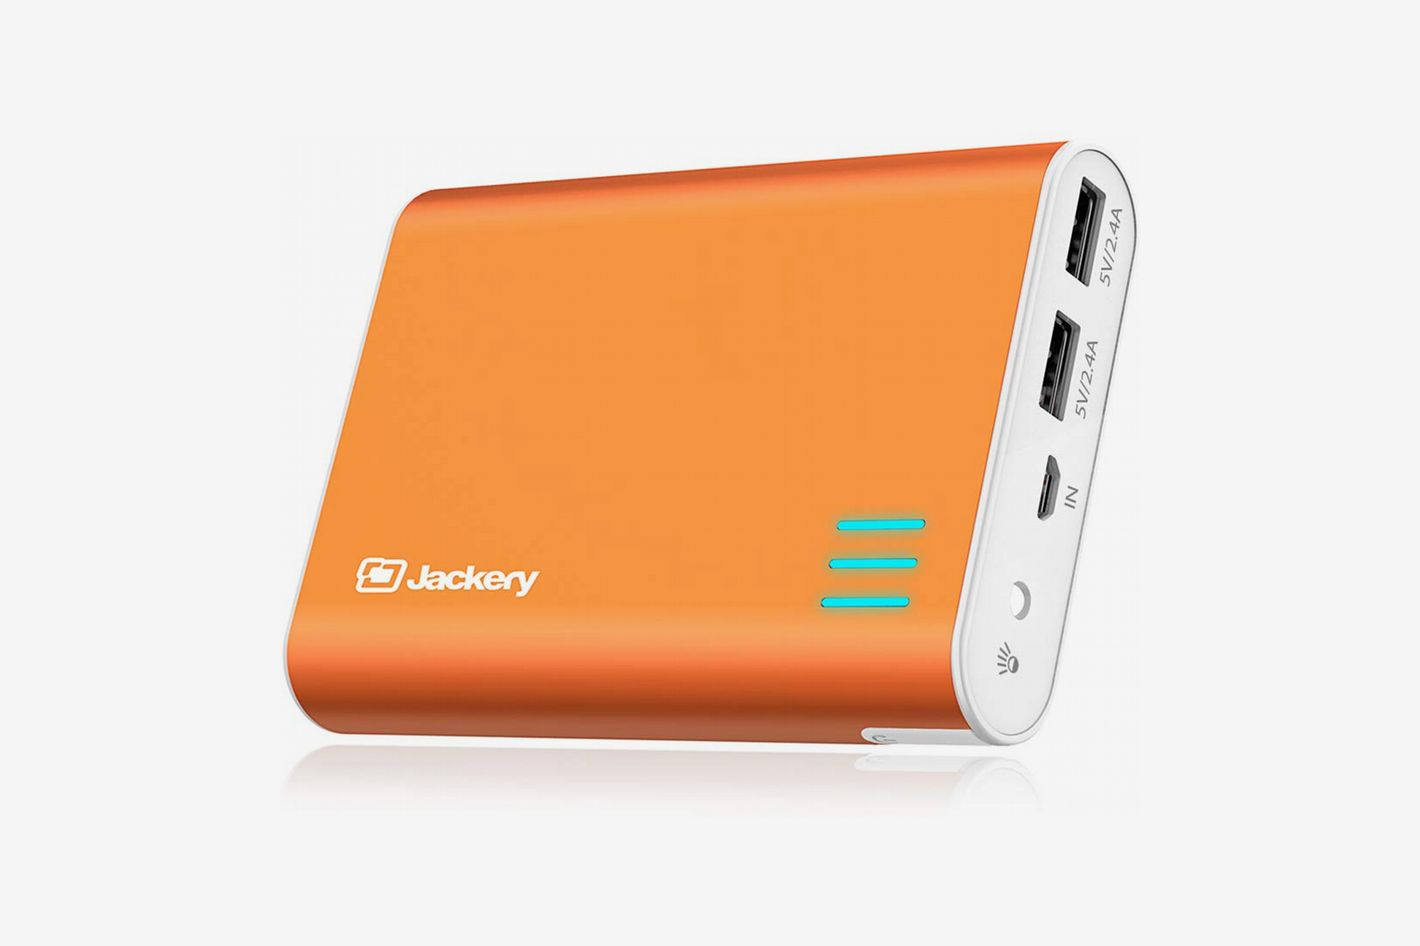 Jackery External Battery Charger Giant+ 12000mAh Dual USB Portable Battery Charger